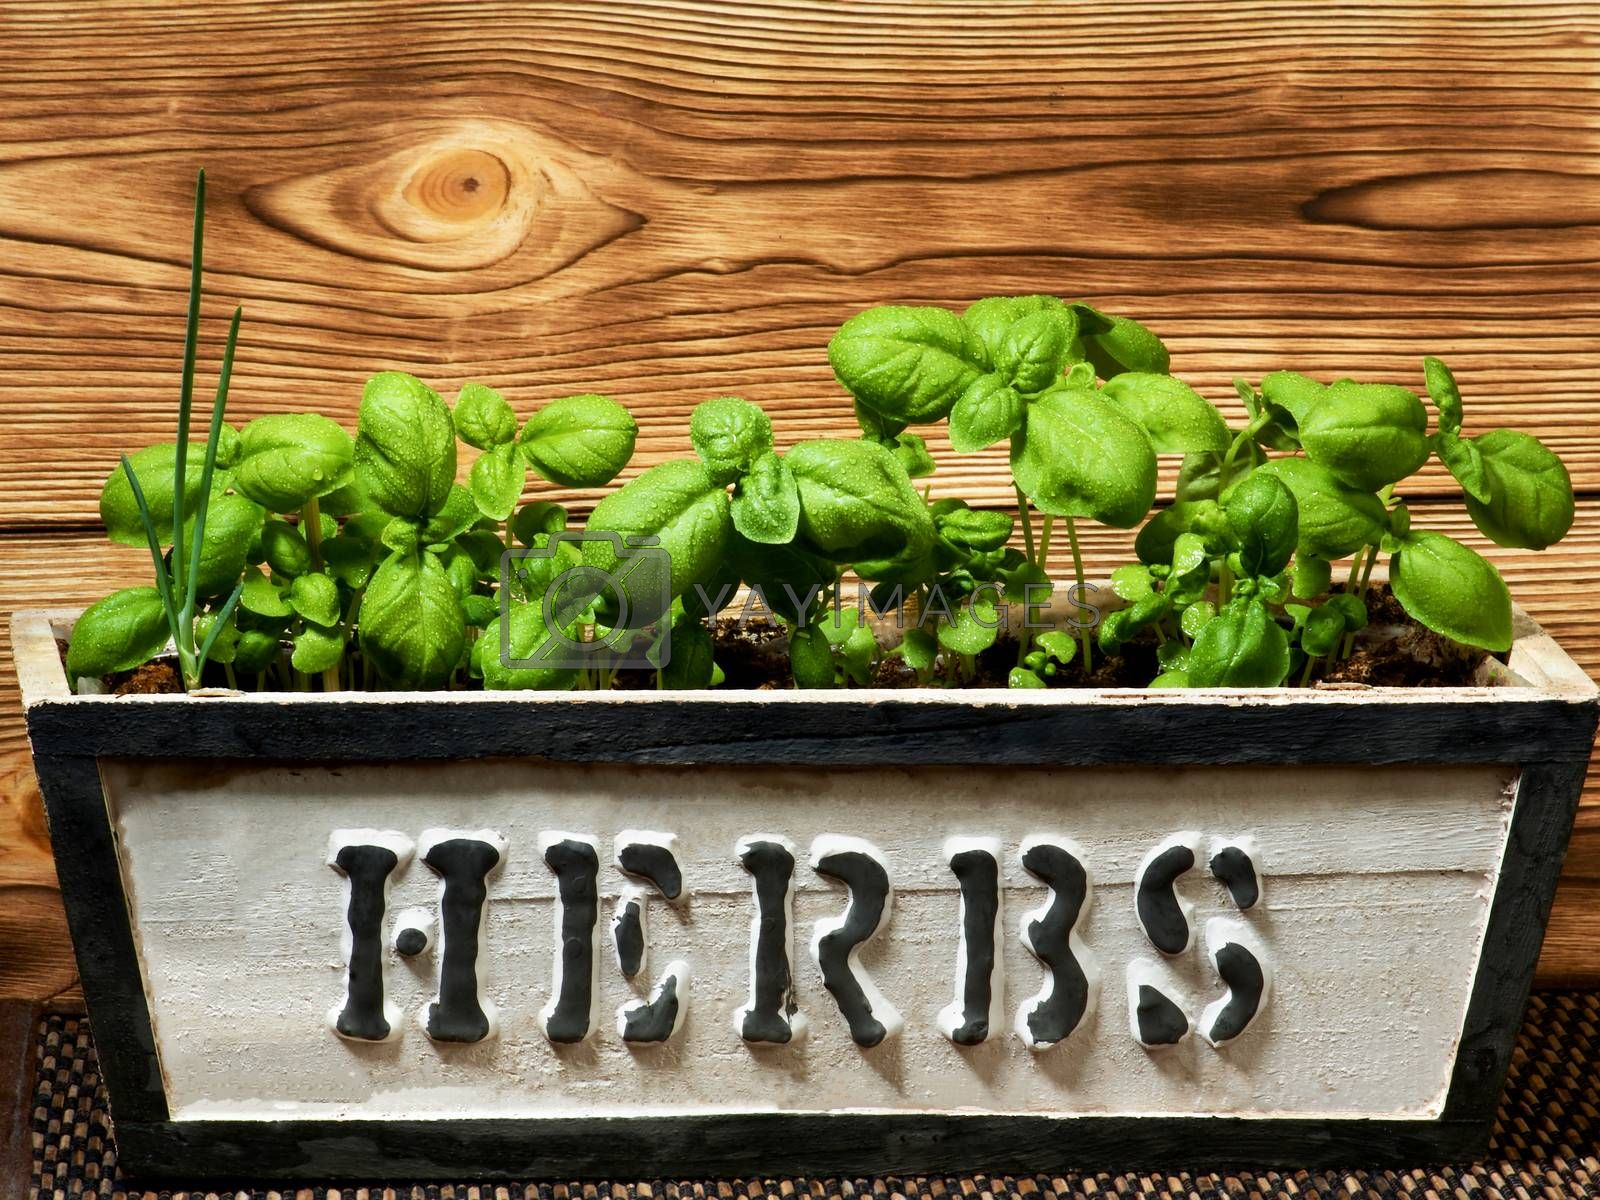 Small Lush Foliage Fresh Green Basil with Water Drops in Handmade Wooden Box closeup on Wooden background